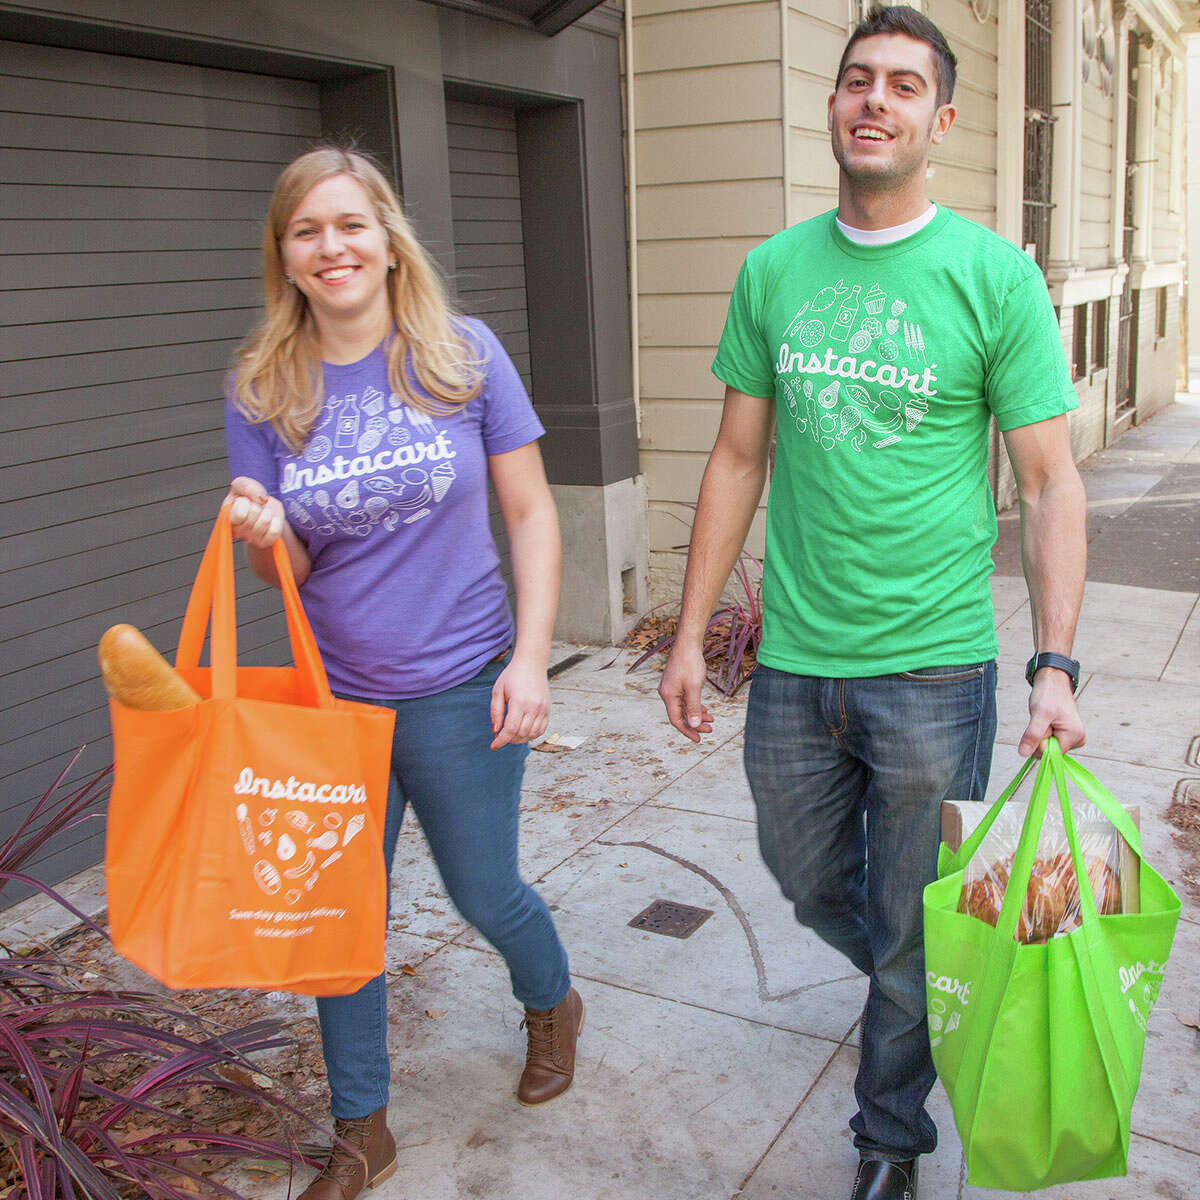 Instacart, a grocery delivery service, is launching in Houston on Wednesday, serving areas inside the 610 Loop. Instacart will initially provide service for H-E-B and Whole Foods customers.